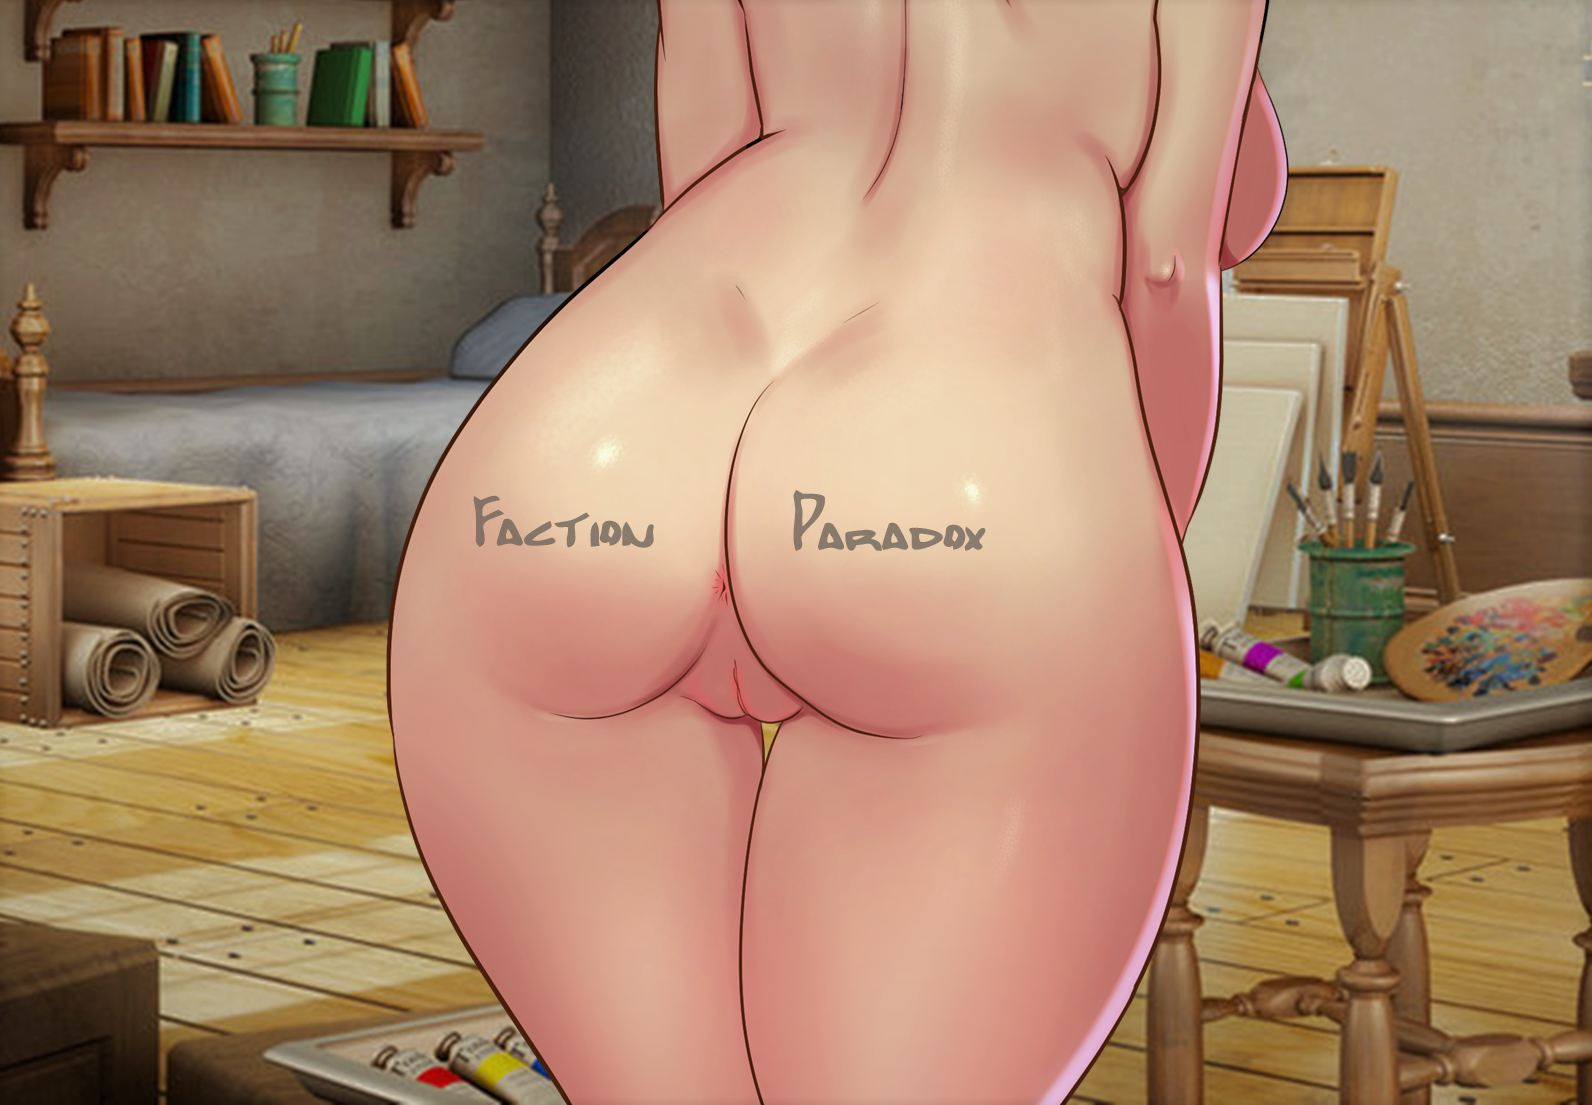 Faction Paradox Adult Game Cover